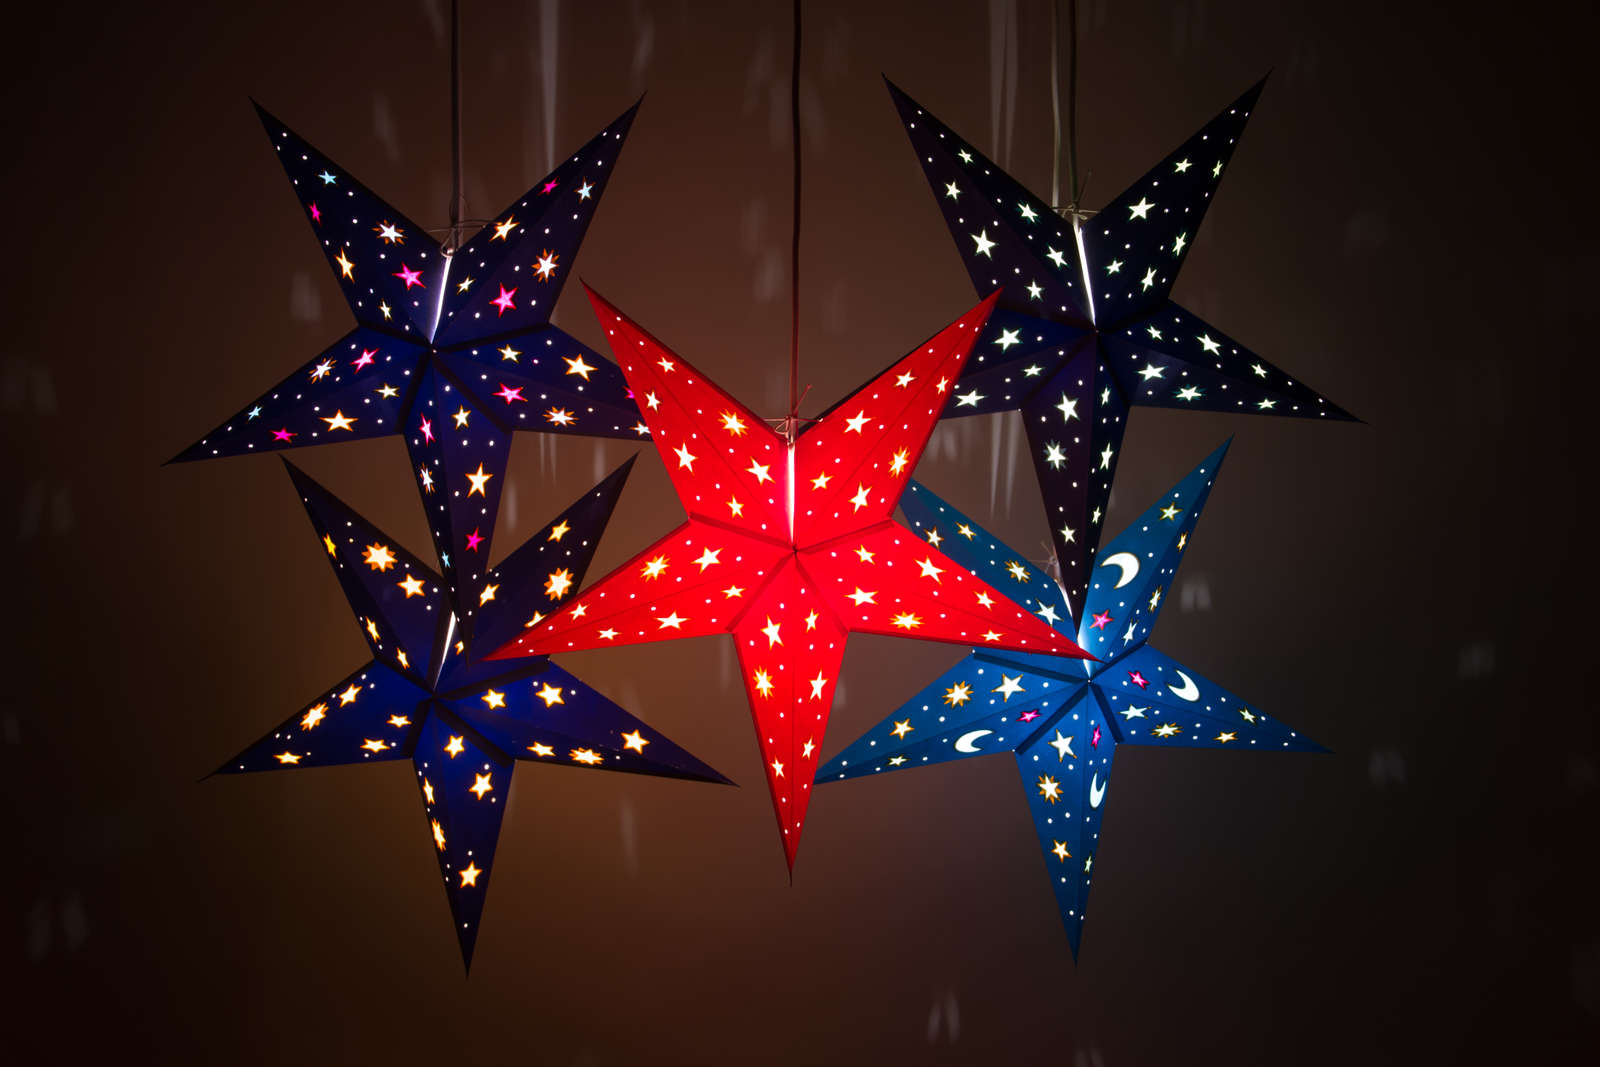 Sky Decorative Paper Star Lanterns & Light Shades